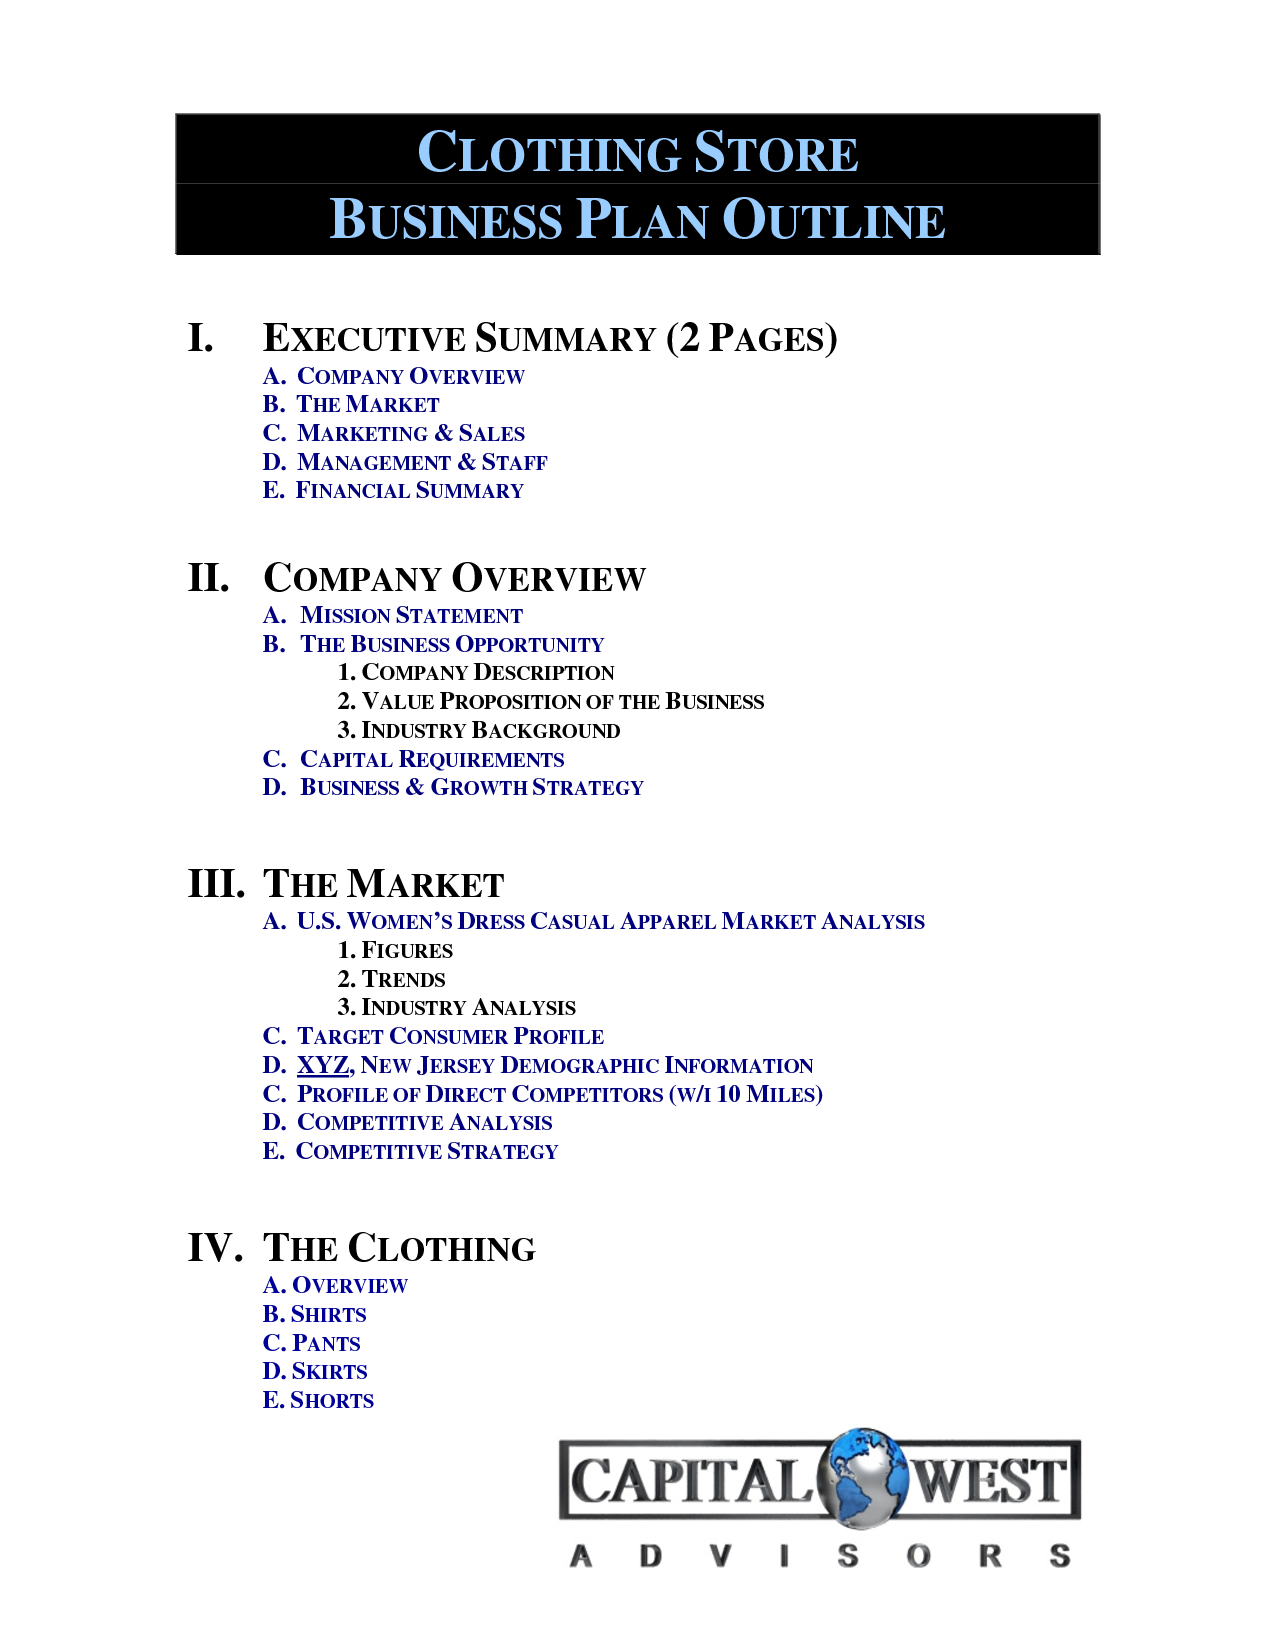 Clothing line business plan template free free business template clothing line business plan template free free business template wajeb Choice Image